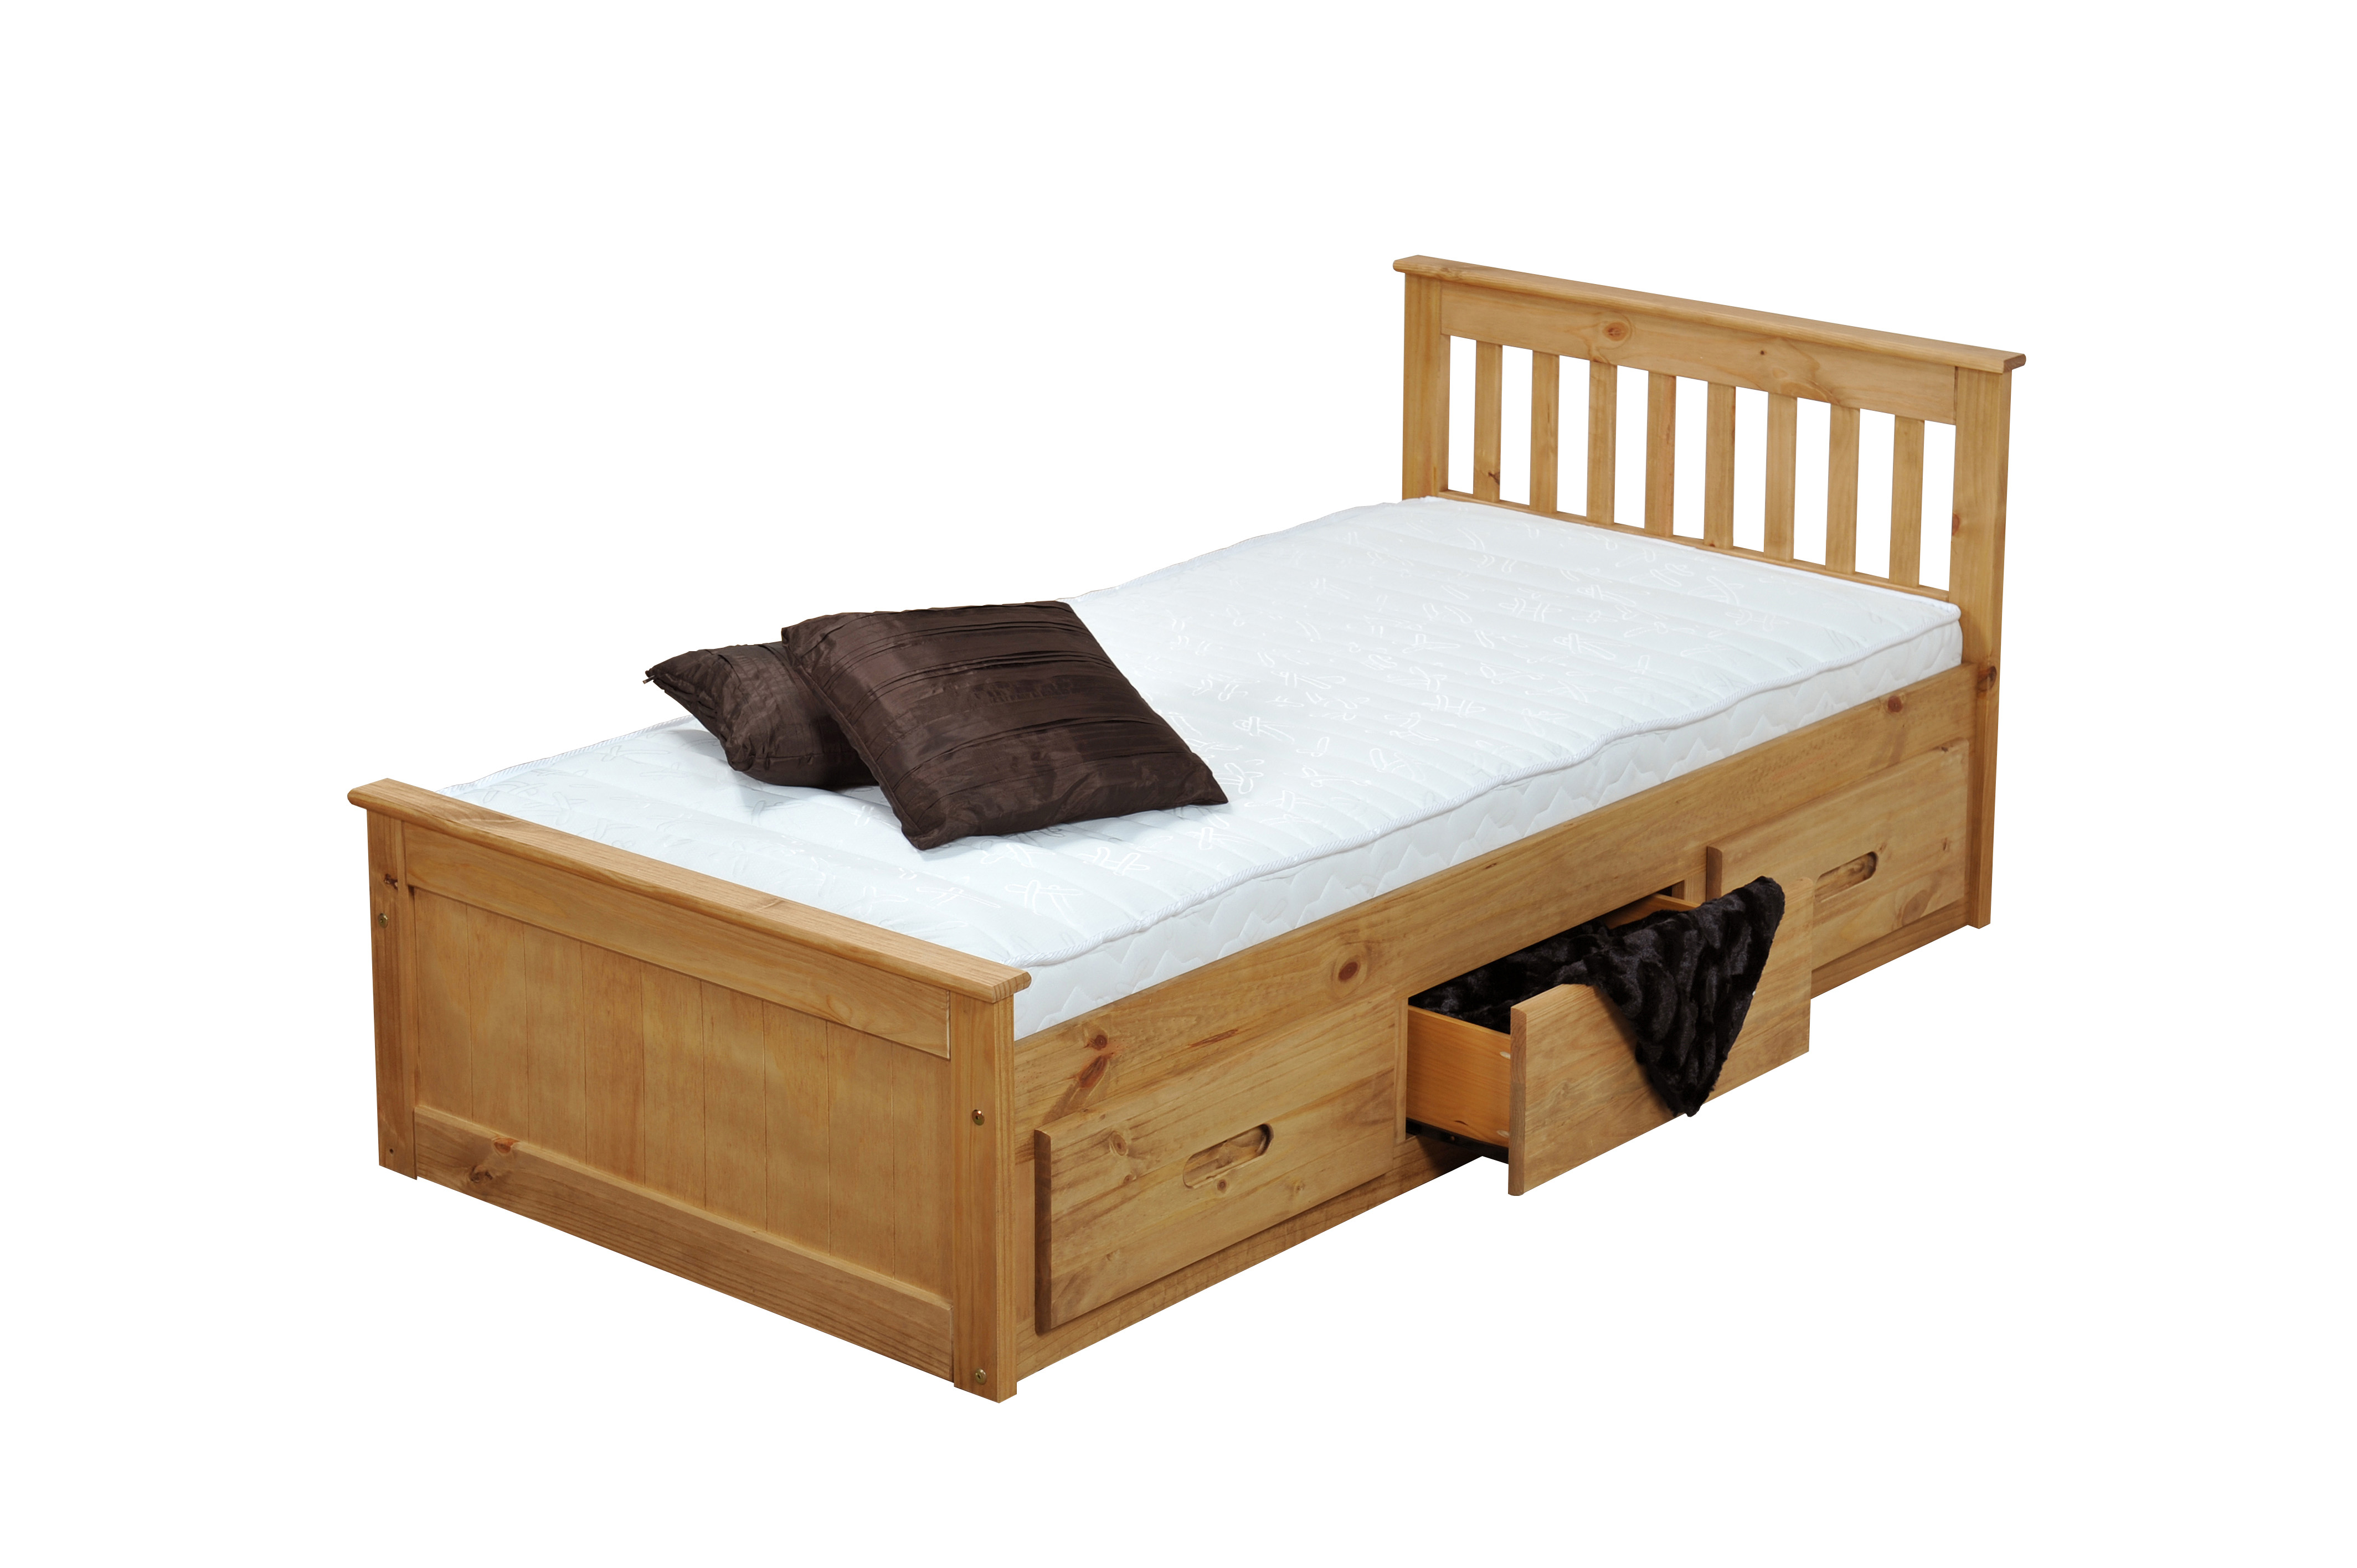 3FT MISSION STORAGE BED IN WAXED